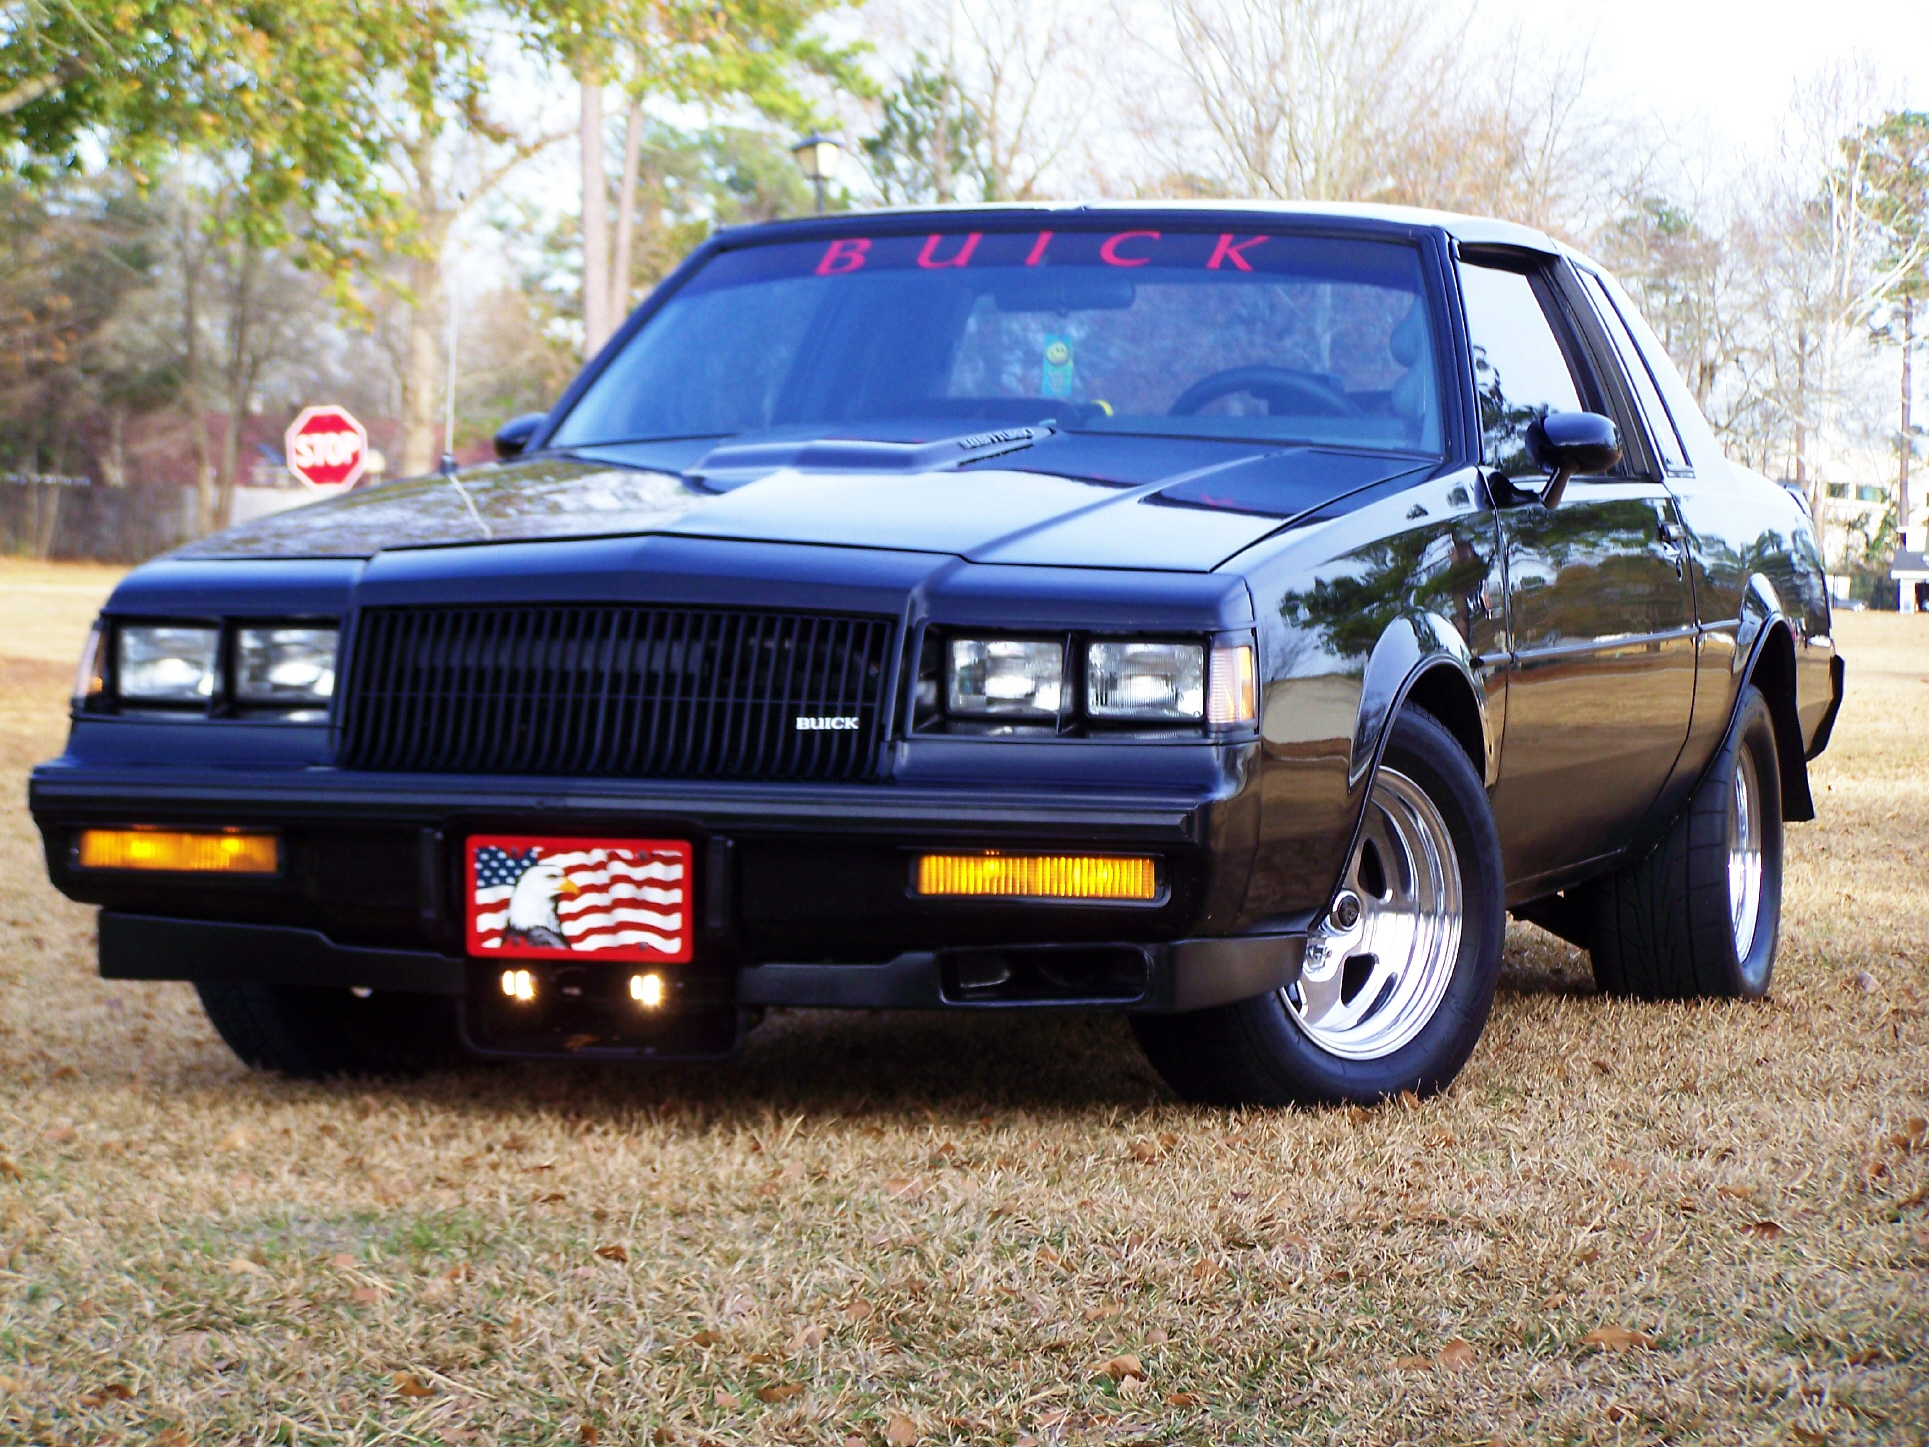 1987 Buick Grand National 1/4 mile Drag Racing timeslip specs 0-60